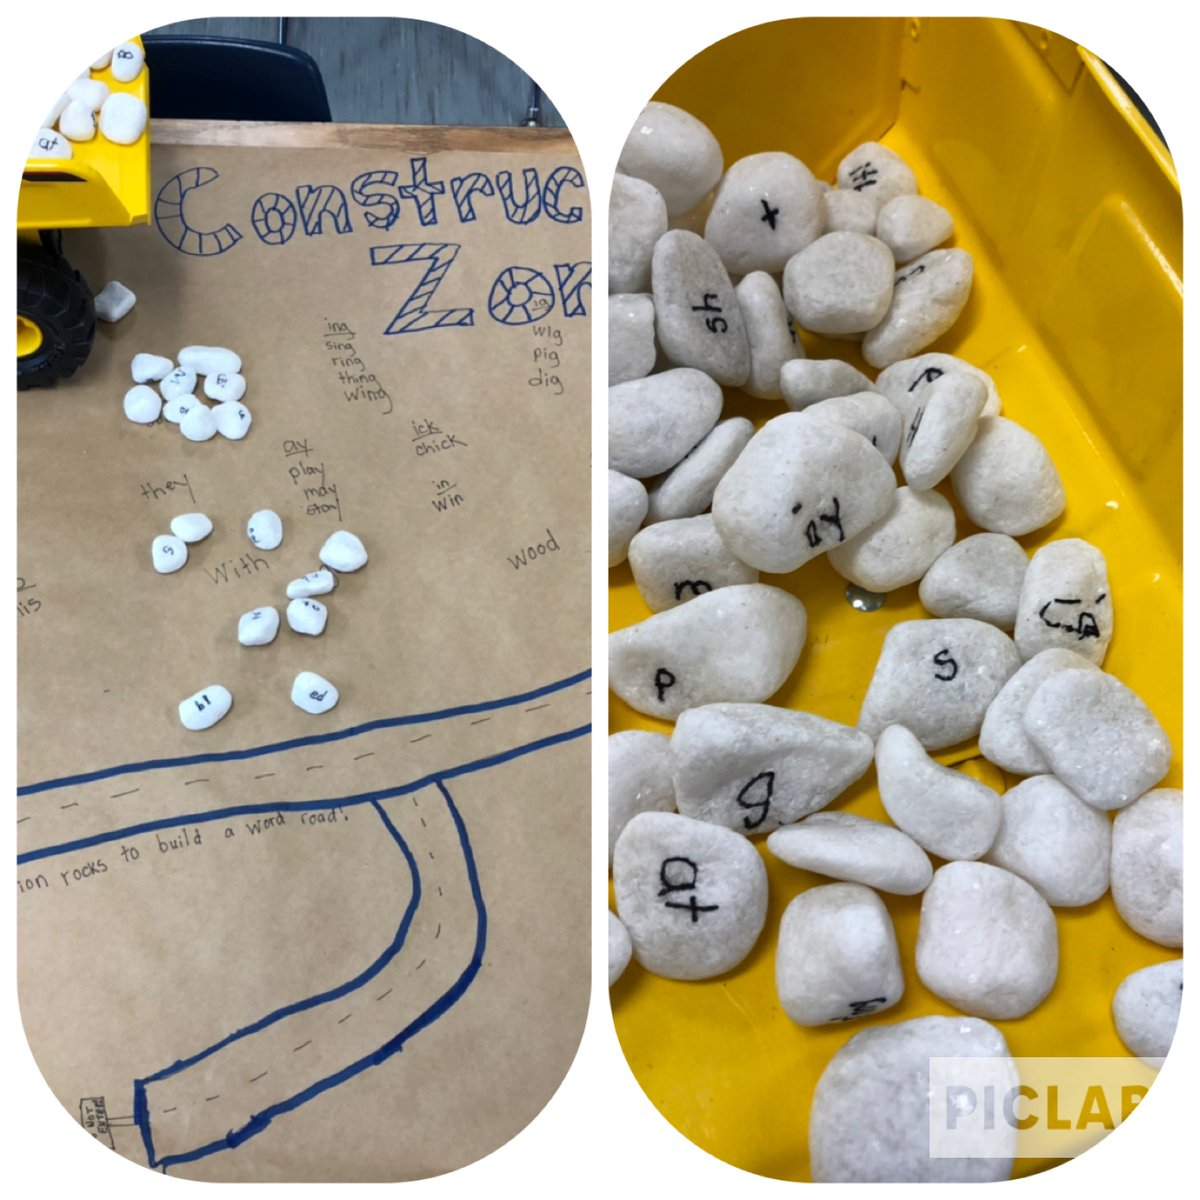 Building roads with words made of blends and word families was hard work! We definitely needed our Tonka dump truck to complete construction! <a target='_blank' href='http://twitter.com/AbingdonGIFT'>@AbingdonGIFT</a> <a target='_blank' href='http://twitter.com/AbingdonPTA'>@AbingdonPTA</a> <a target='_blank' href='https://t.co/uGudmwdSGX'>https://t.co/uGudmwdSGX</a>